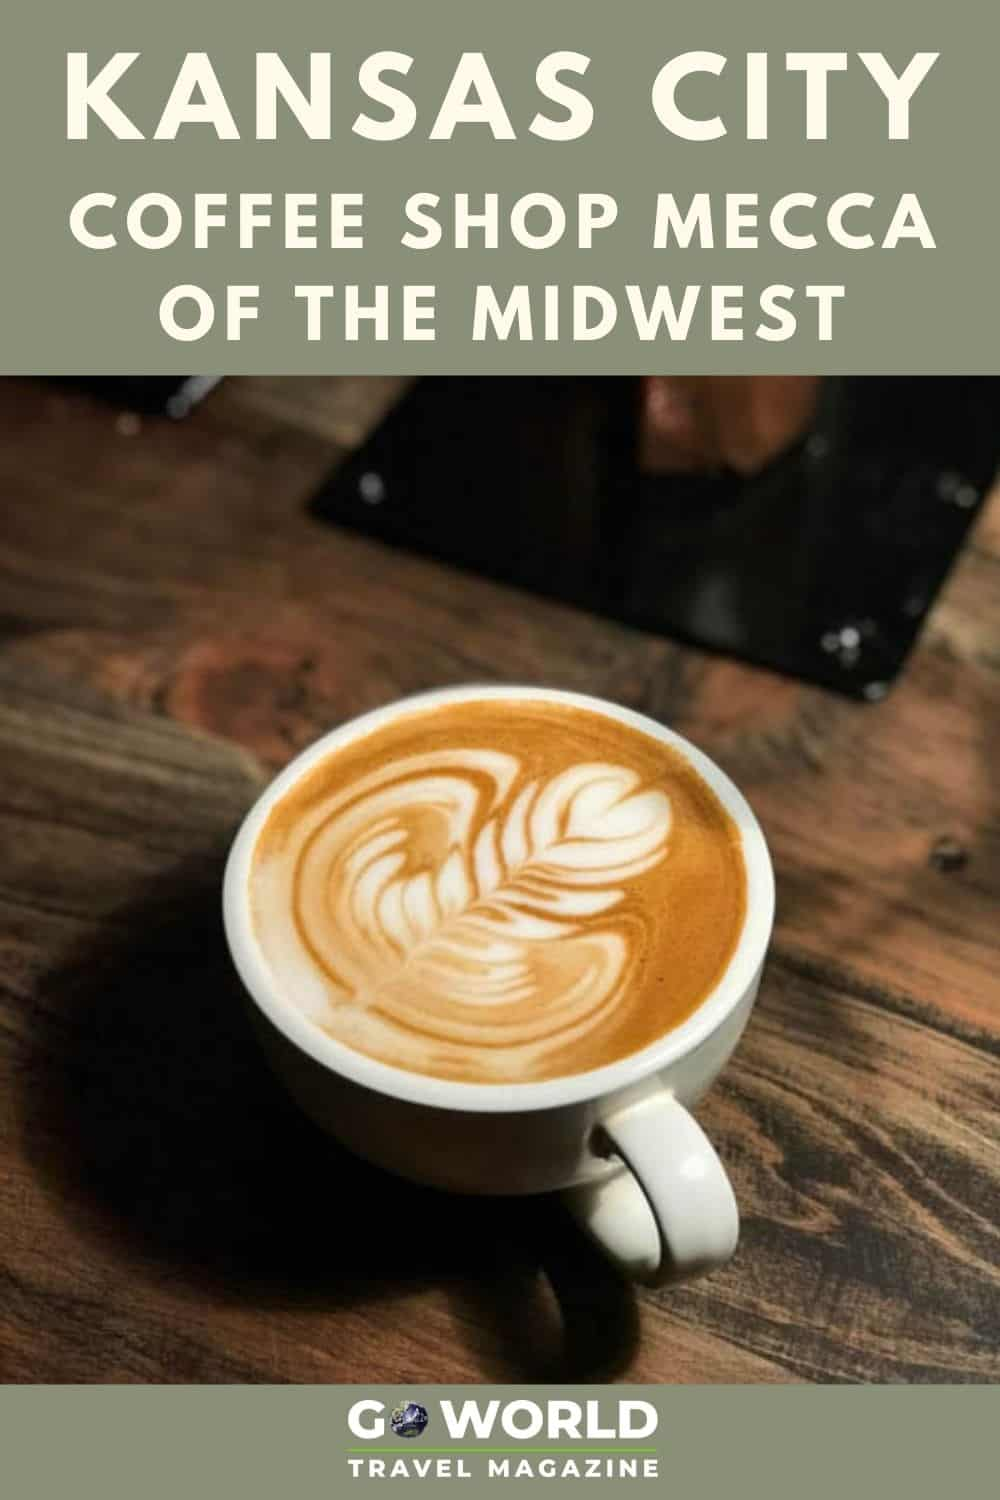 The Kansas City coffee scene is on point. If you're a coffee lover you won't want to miss these epic coffee shops on your next visit to KC. #KansasCity #Midwest #Travelfor Coffee